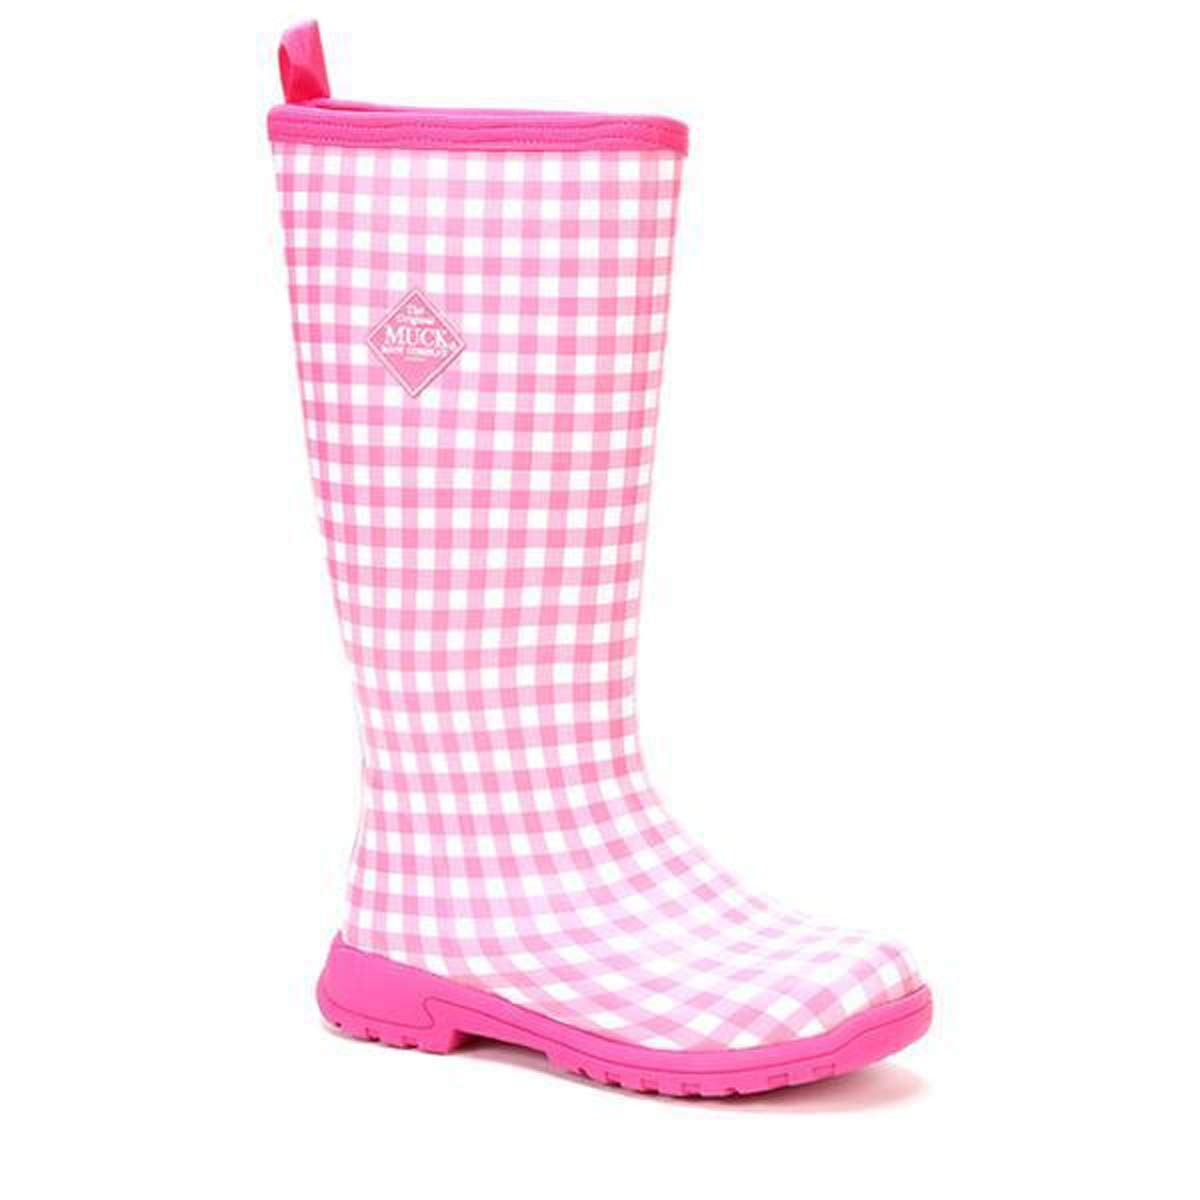 Muck Boot Women's Breezy Tall Pink Gingham Size 5 Insulated Rainboot by Muck Boot